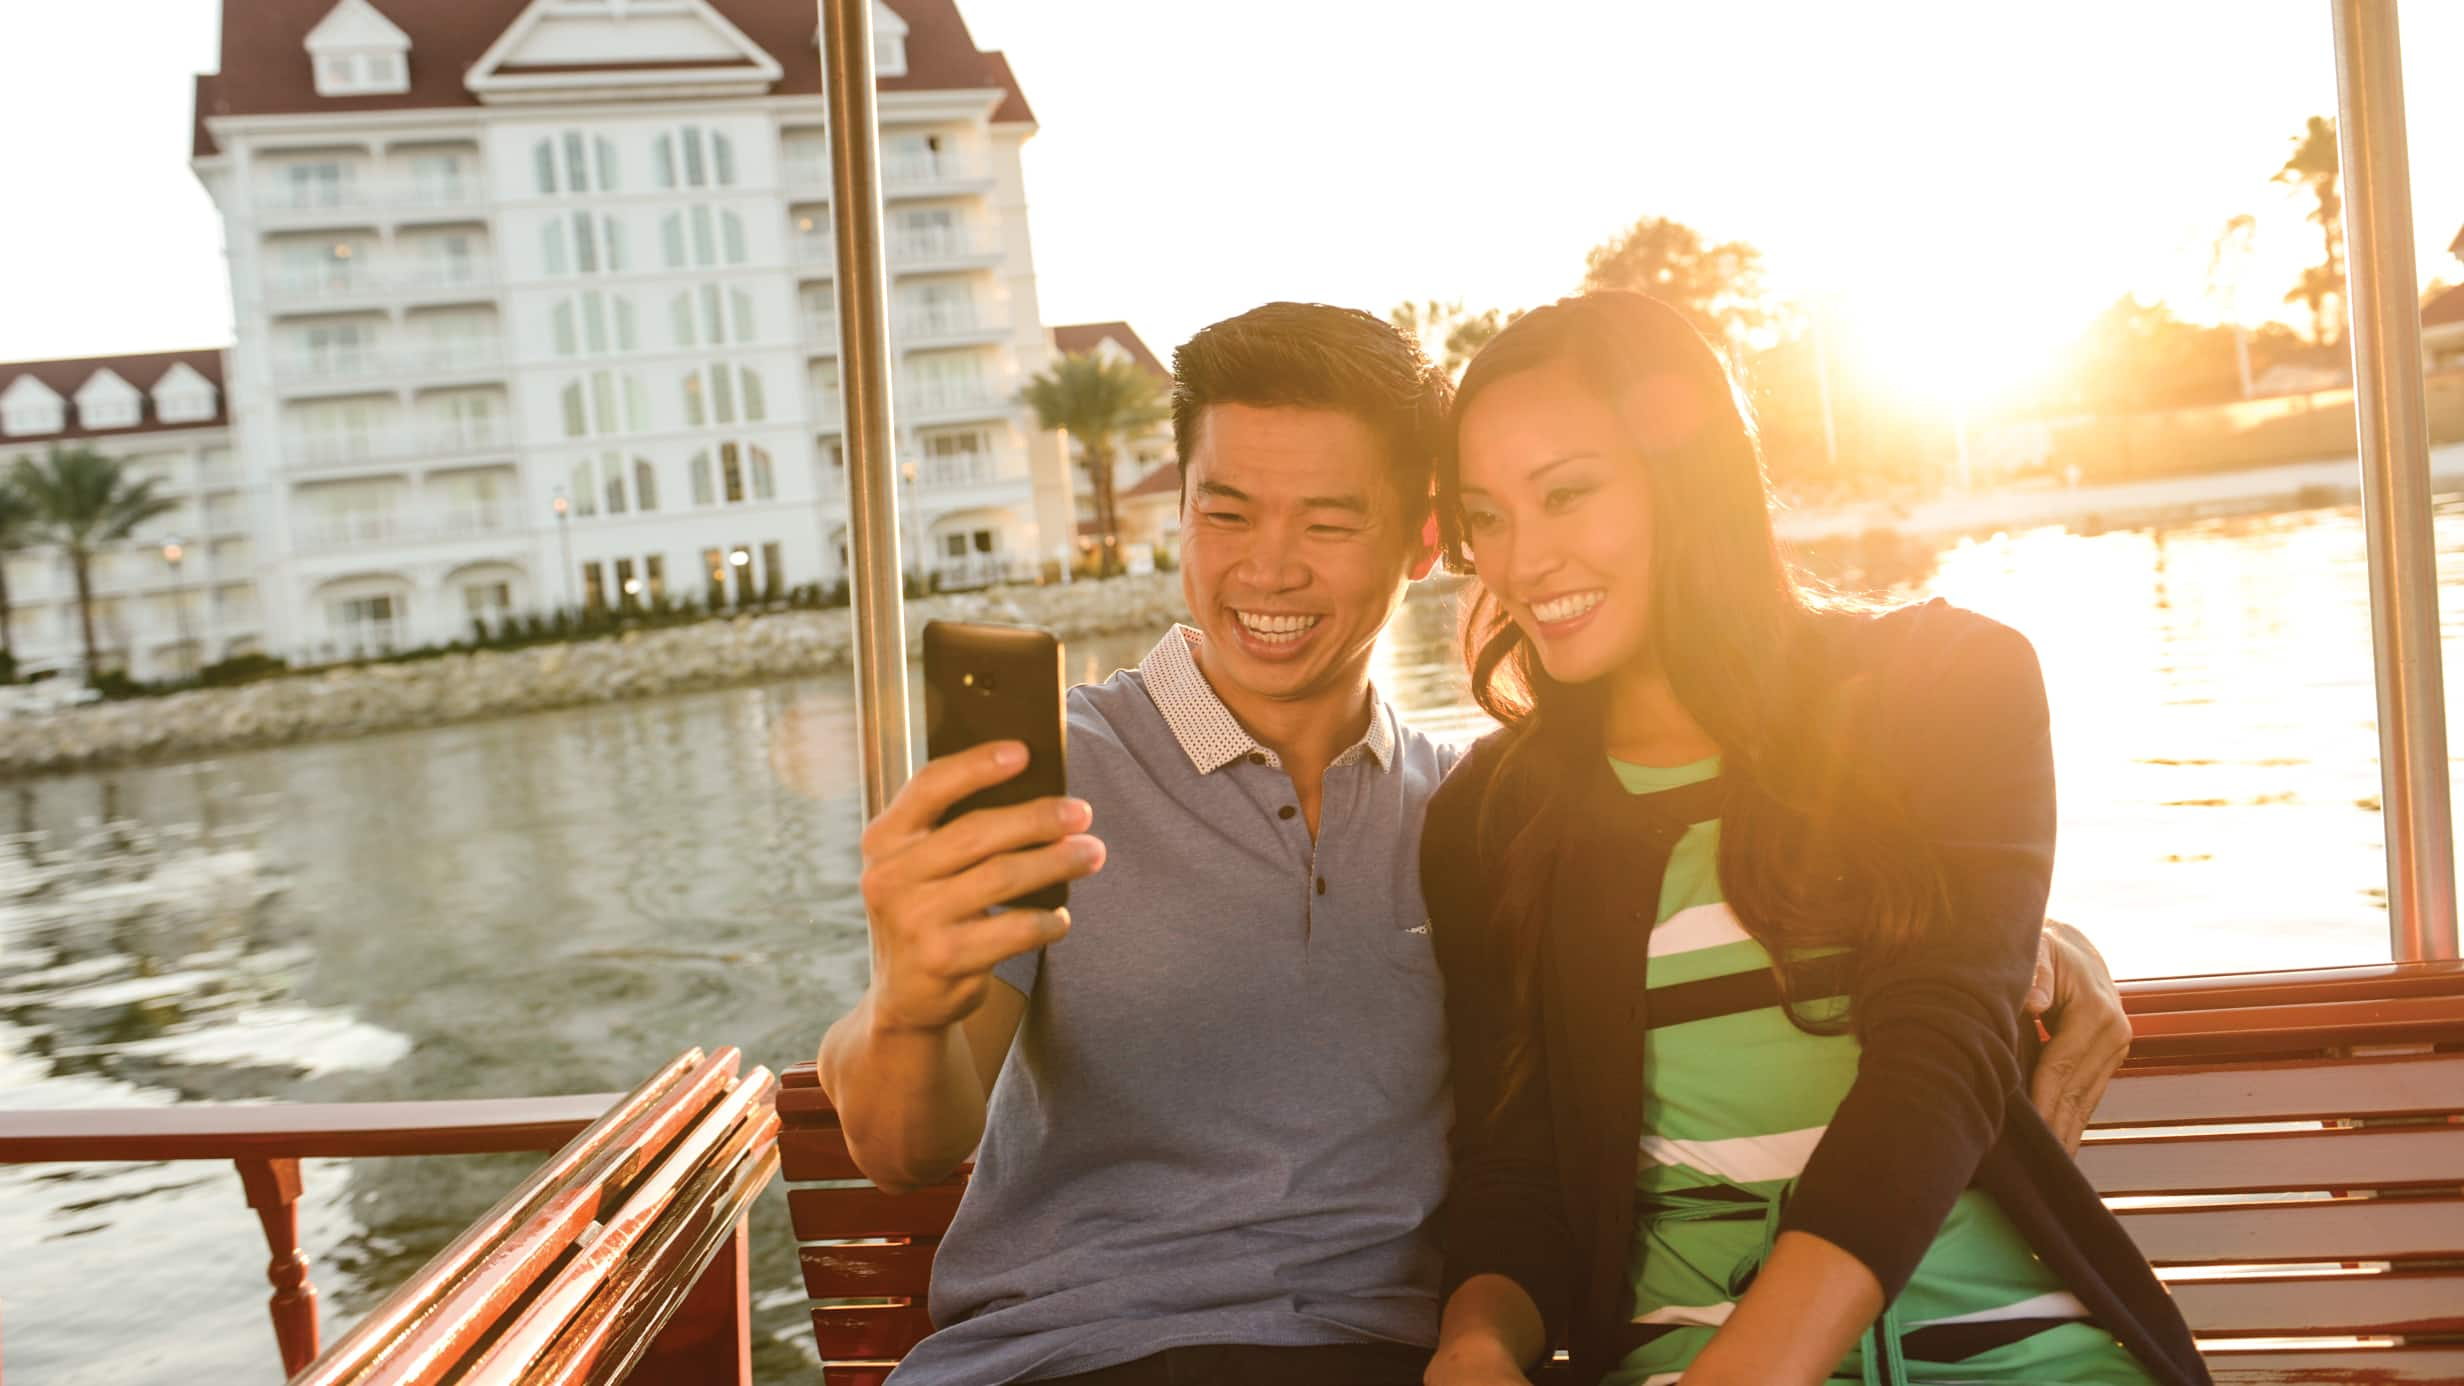 A man and woman take a selfie while riding on a boat